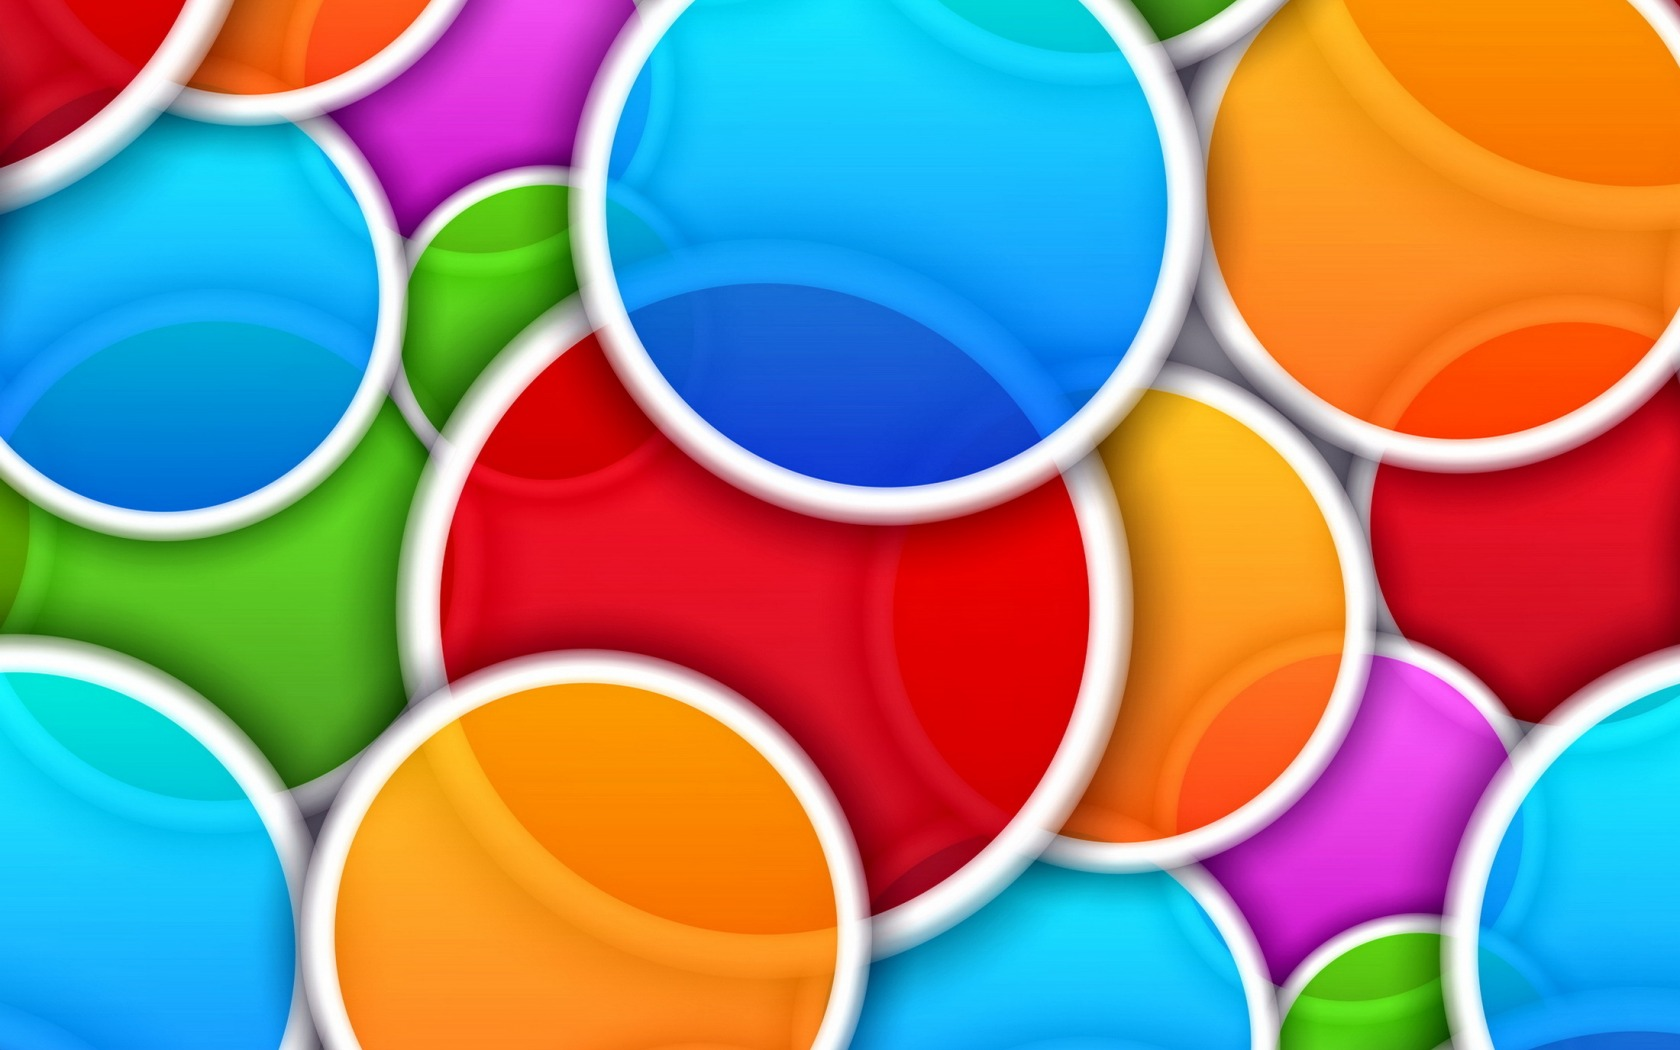 Download Wallpaper circles, abstraction, background, colors.